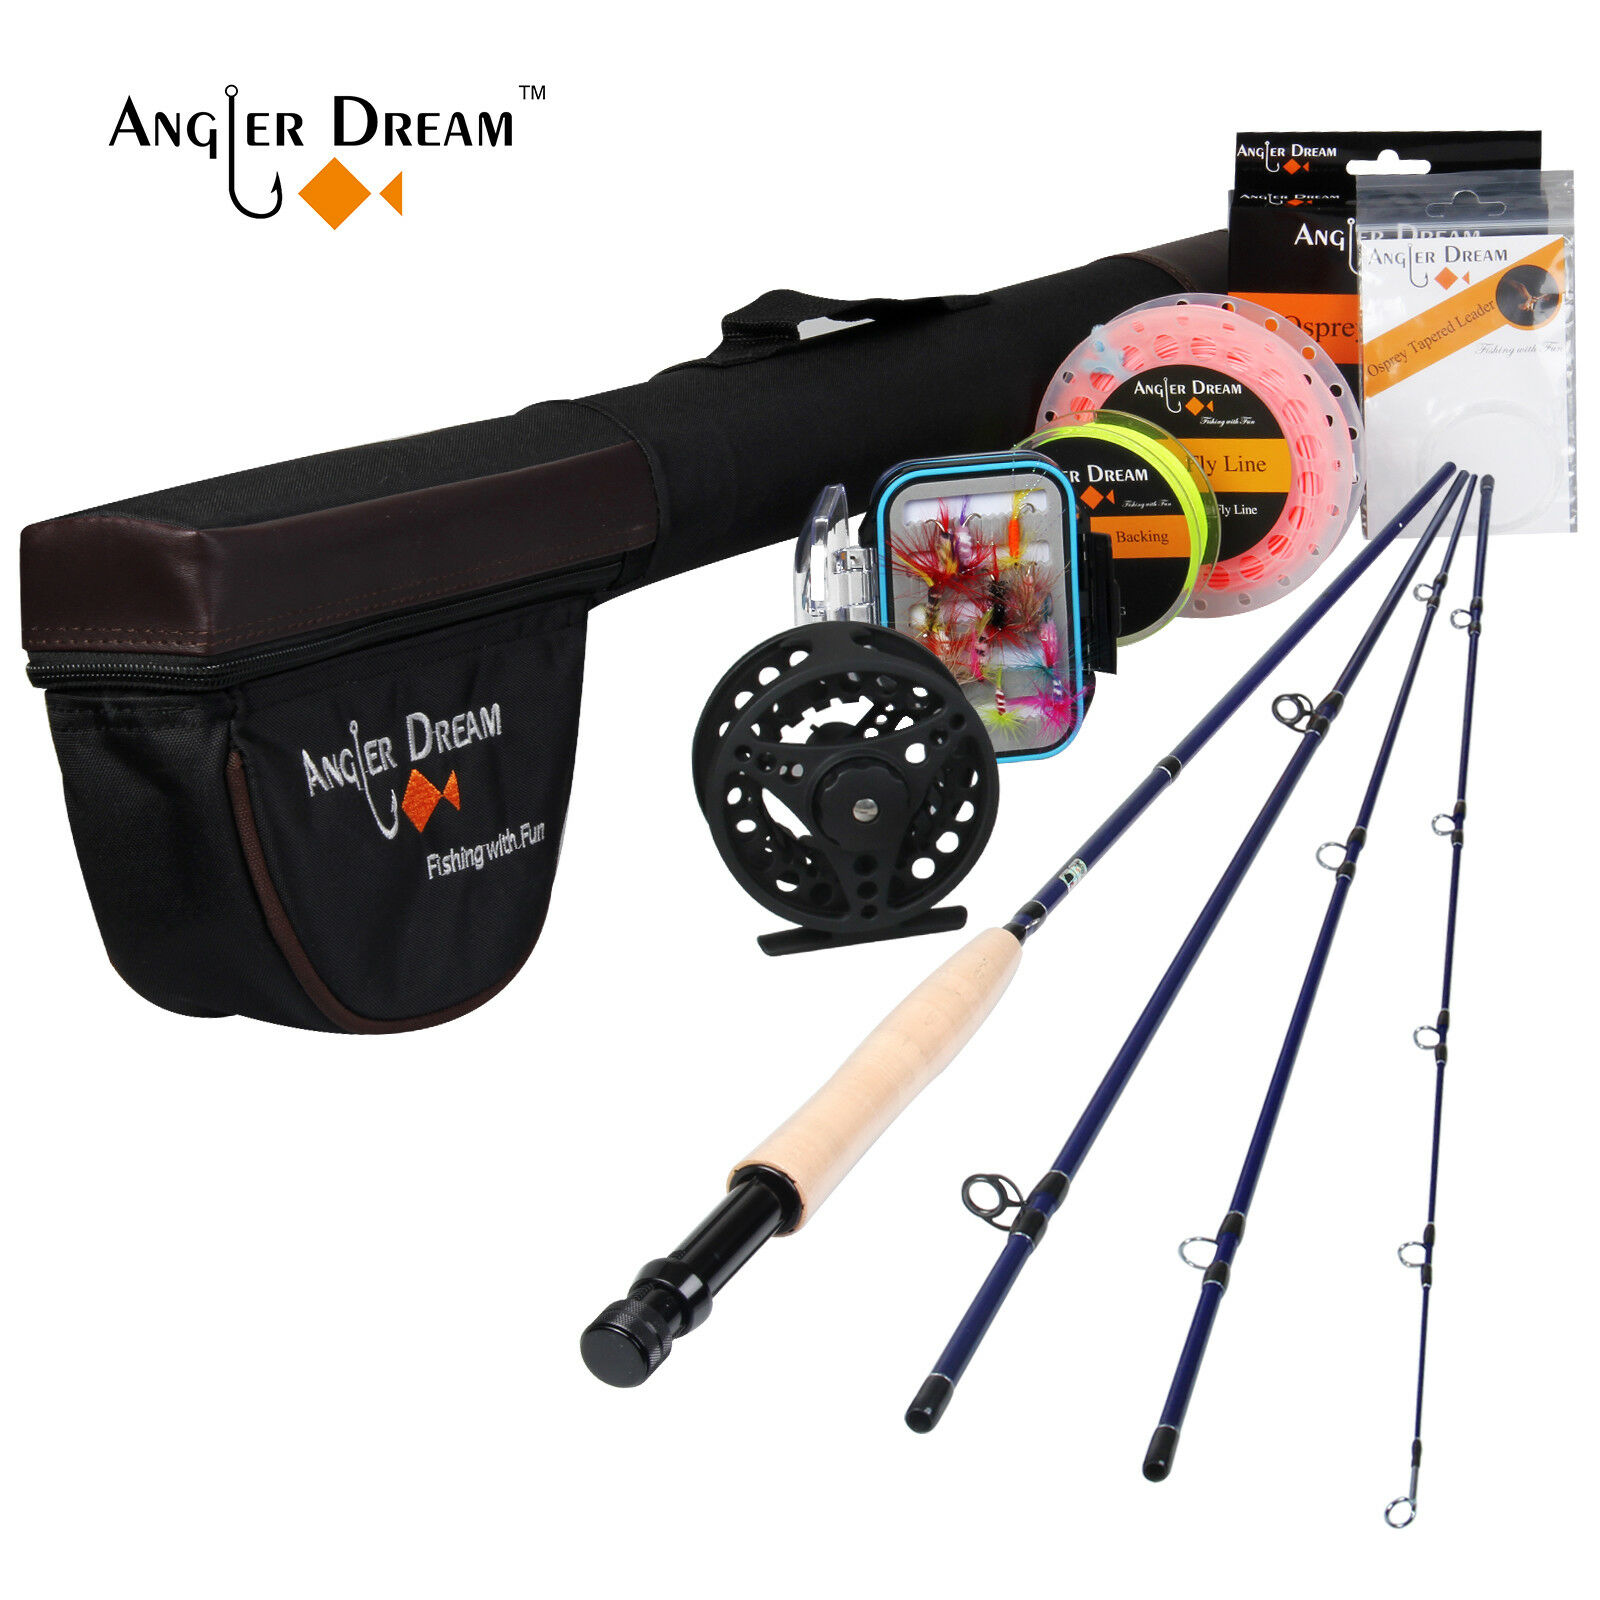 Angler Dream Fly Rod and Reel Combo 3  5WT Carbon Fiber Fly Fishing Rod & Line  quality product